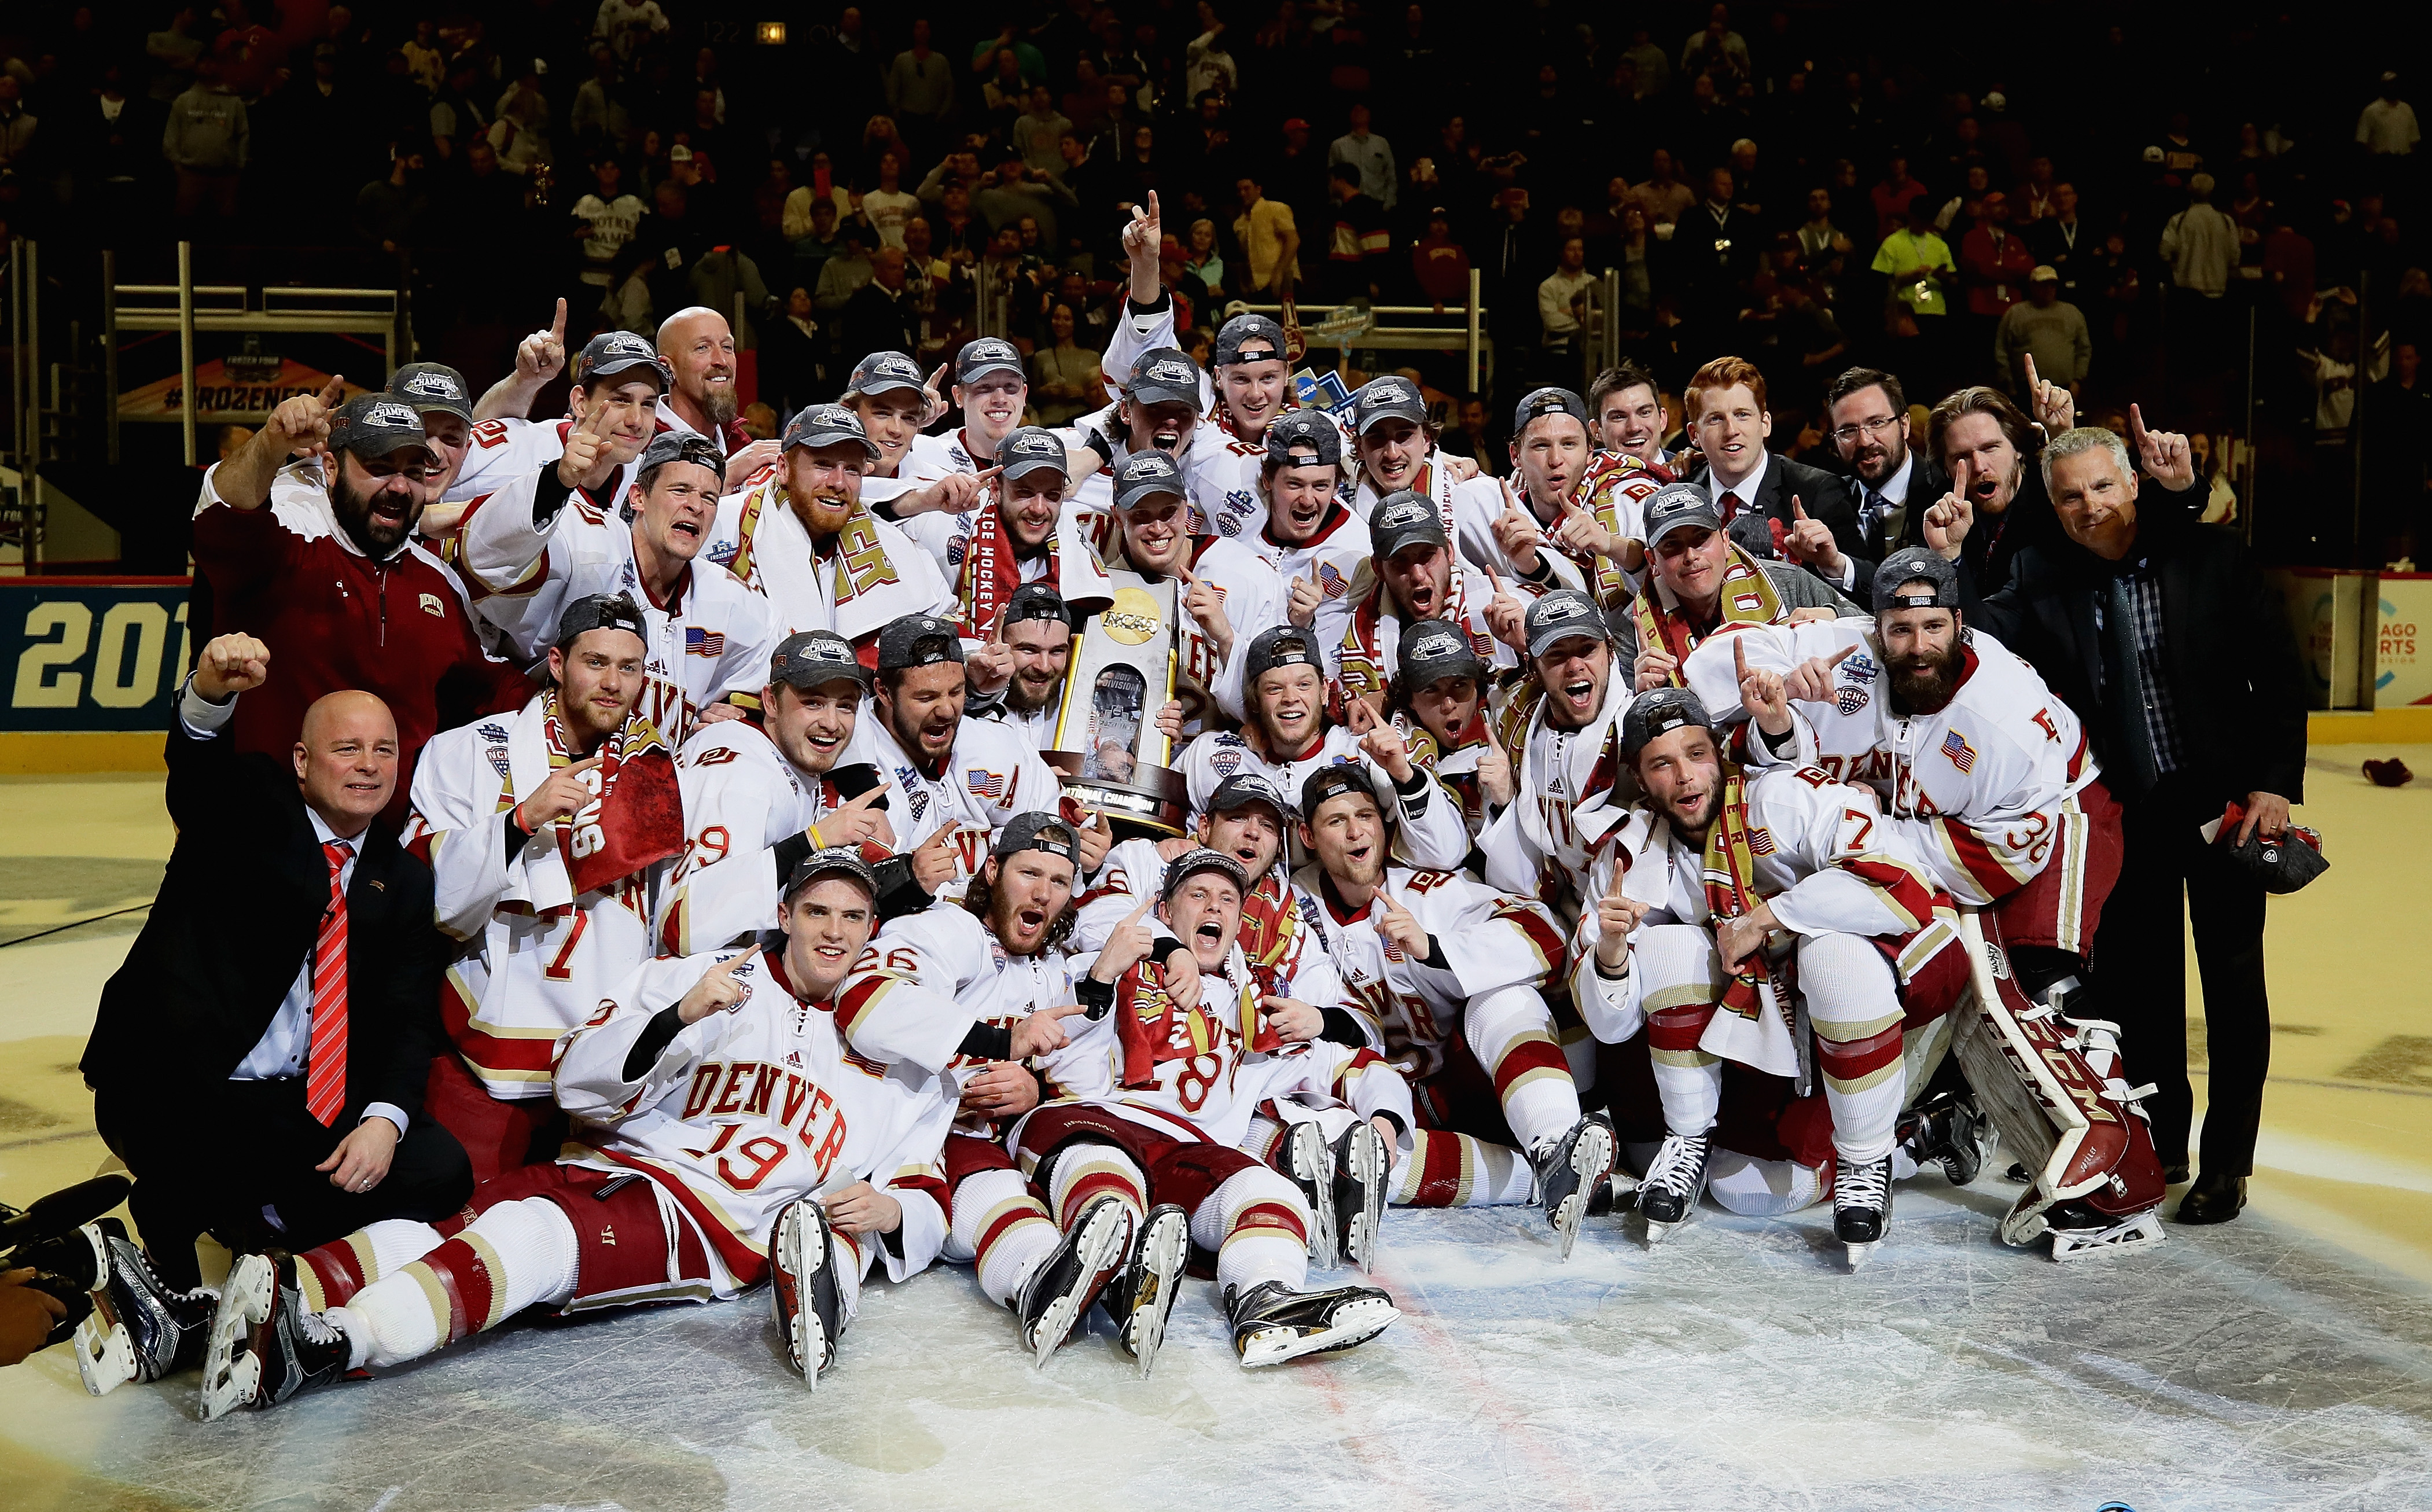 The University of Denver hockey team poses after winning the NCAA championship Saturday in Chicago. (Getty Images)